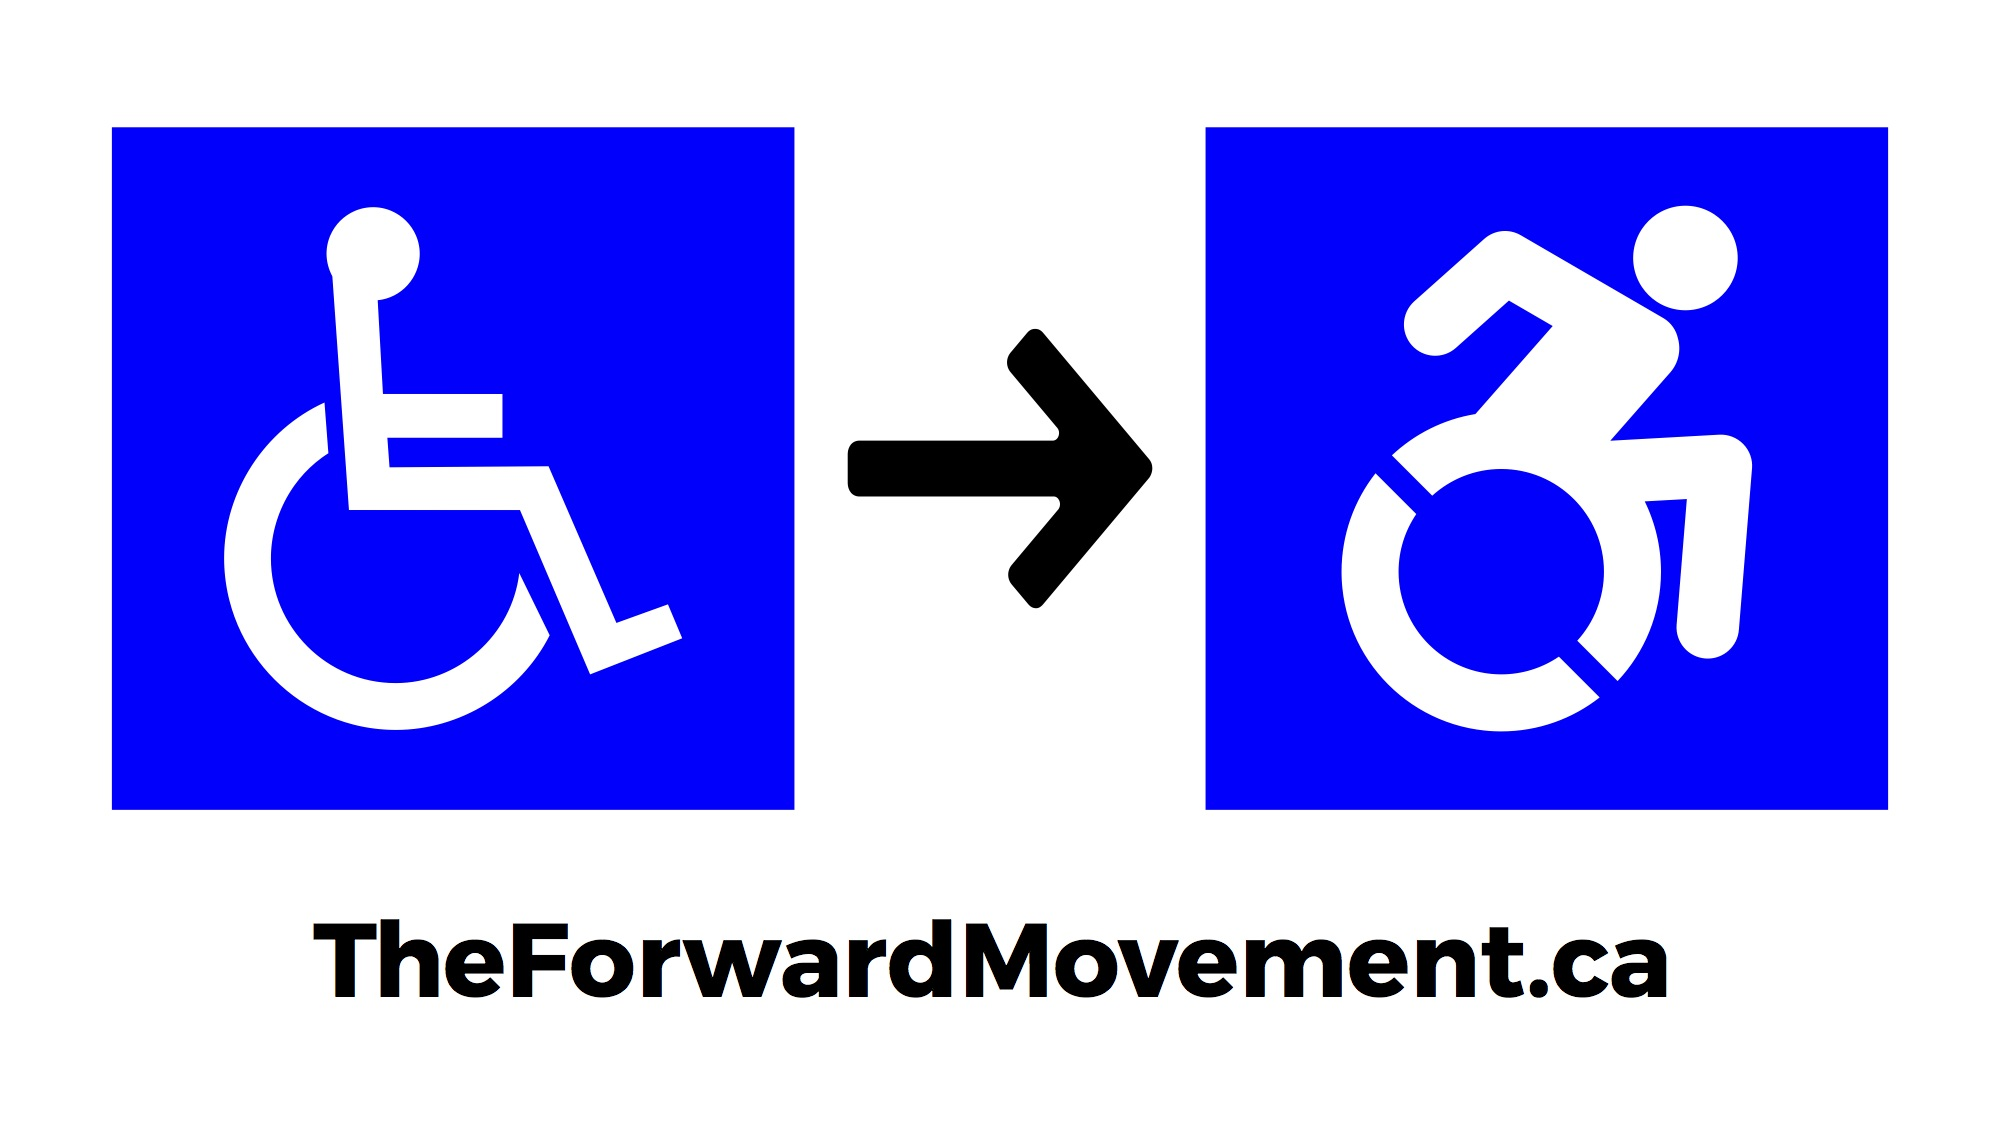 Fwdmvmt logog the forward movement is an accessibility advocacy and awareness campaign working to bring the dynamic symbol biocorpaavc Image collections